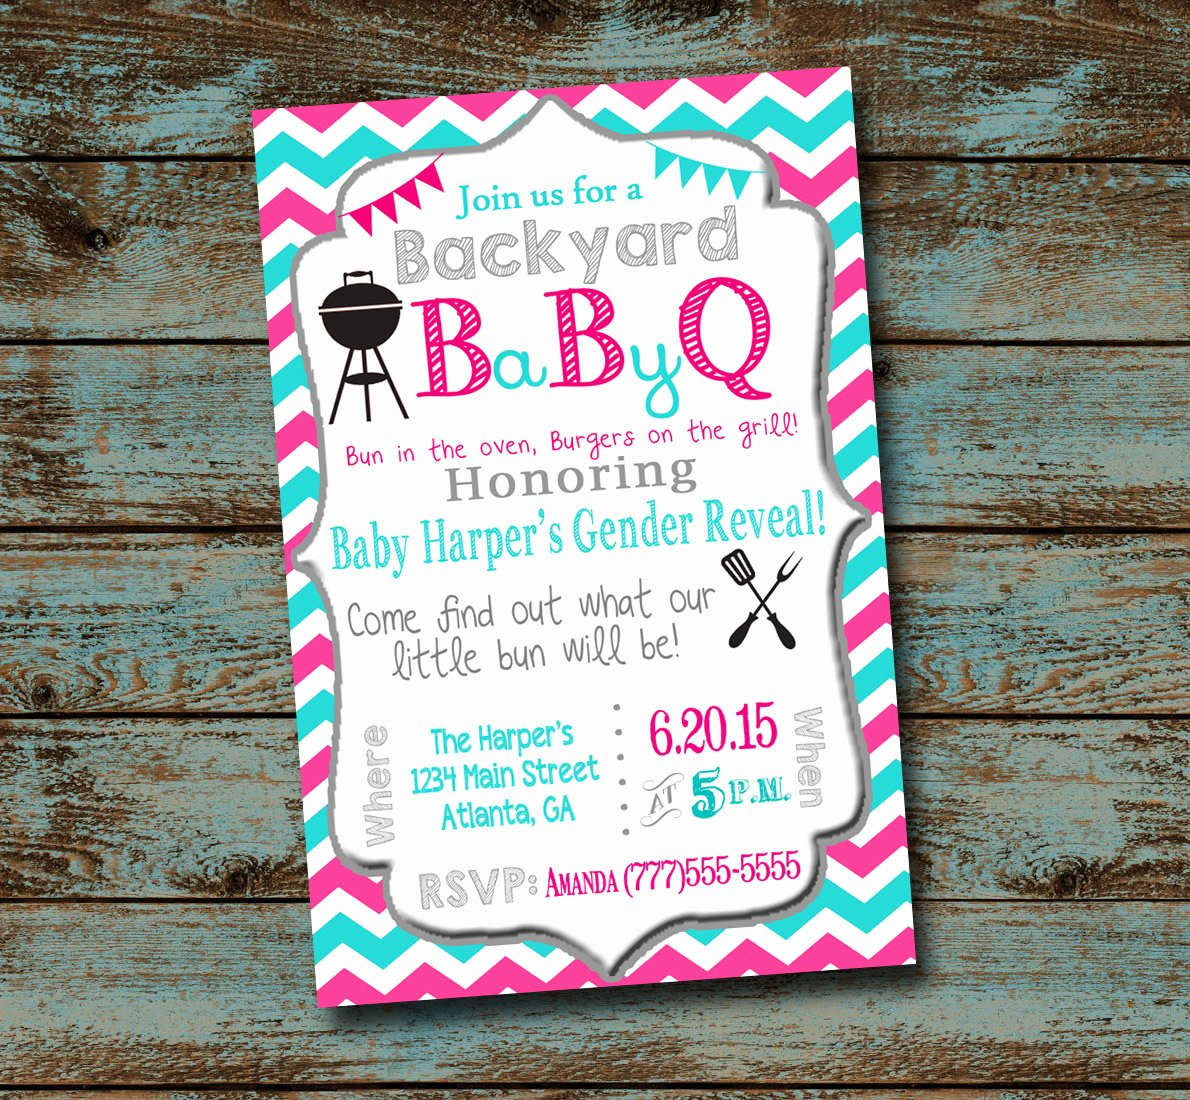 Gender Reveal Bbq Invitations Unique Baby Bbq Gender Reveal Baby Shower Digital File Chevron